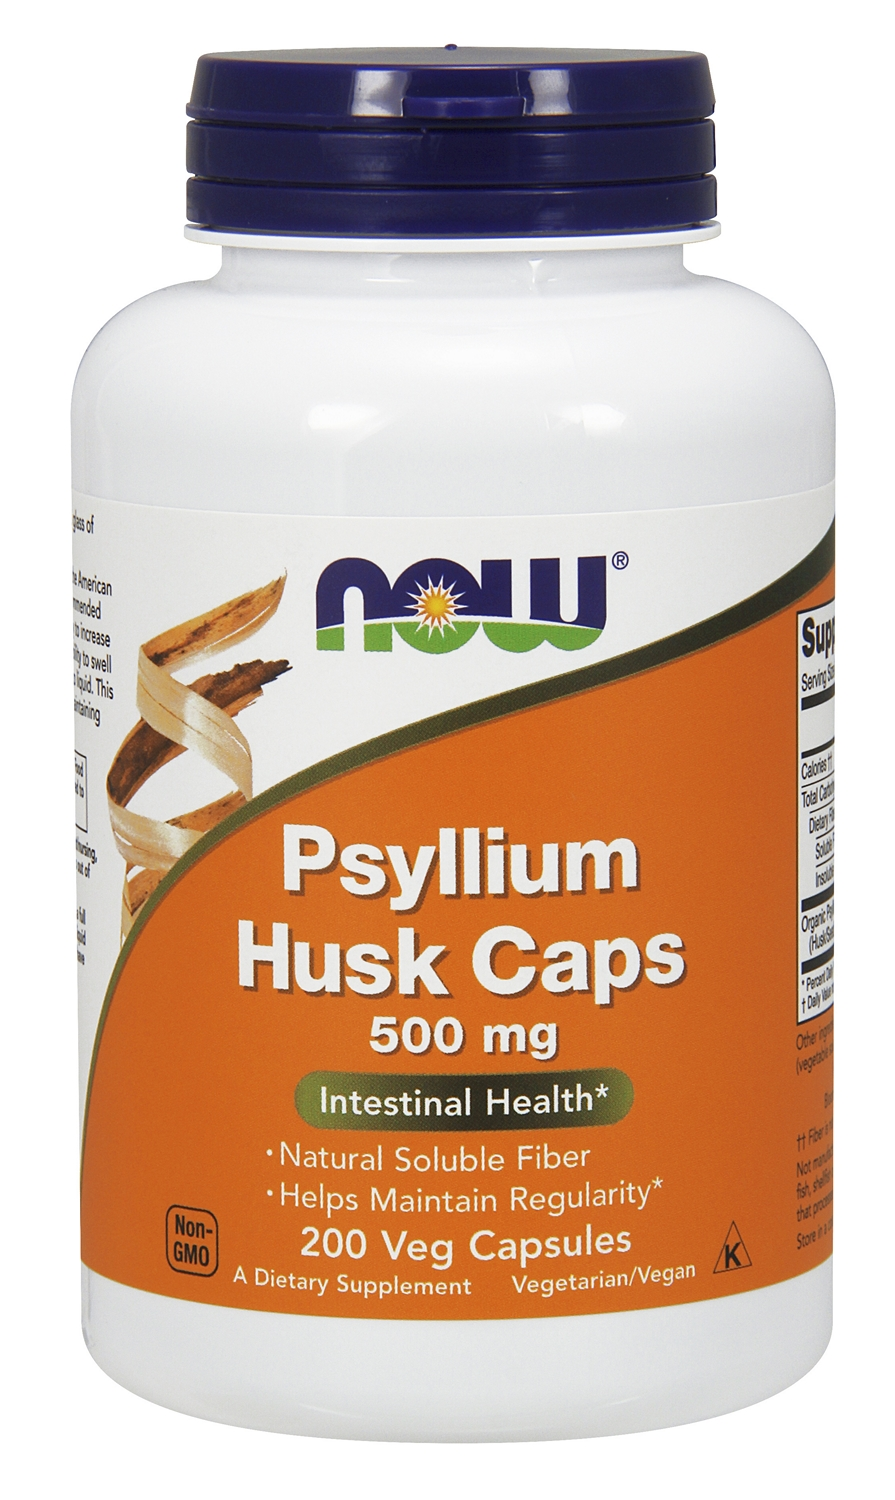 Psyllium Husk Caps 500 mg 200 caps by NOW